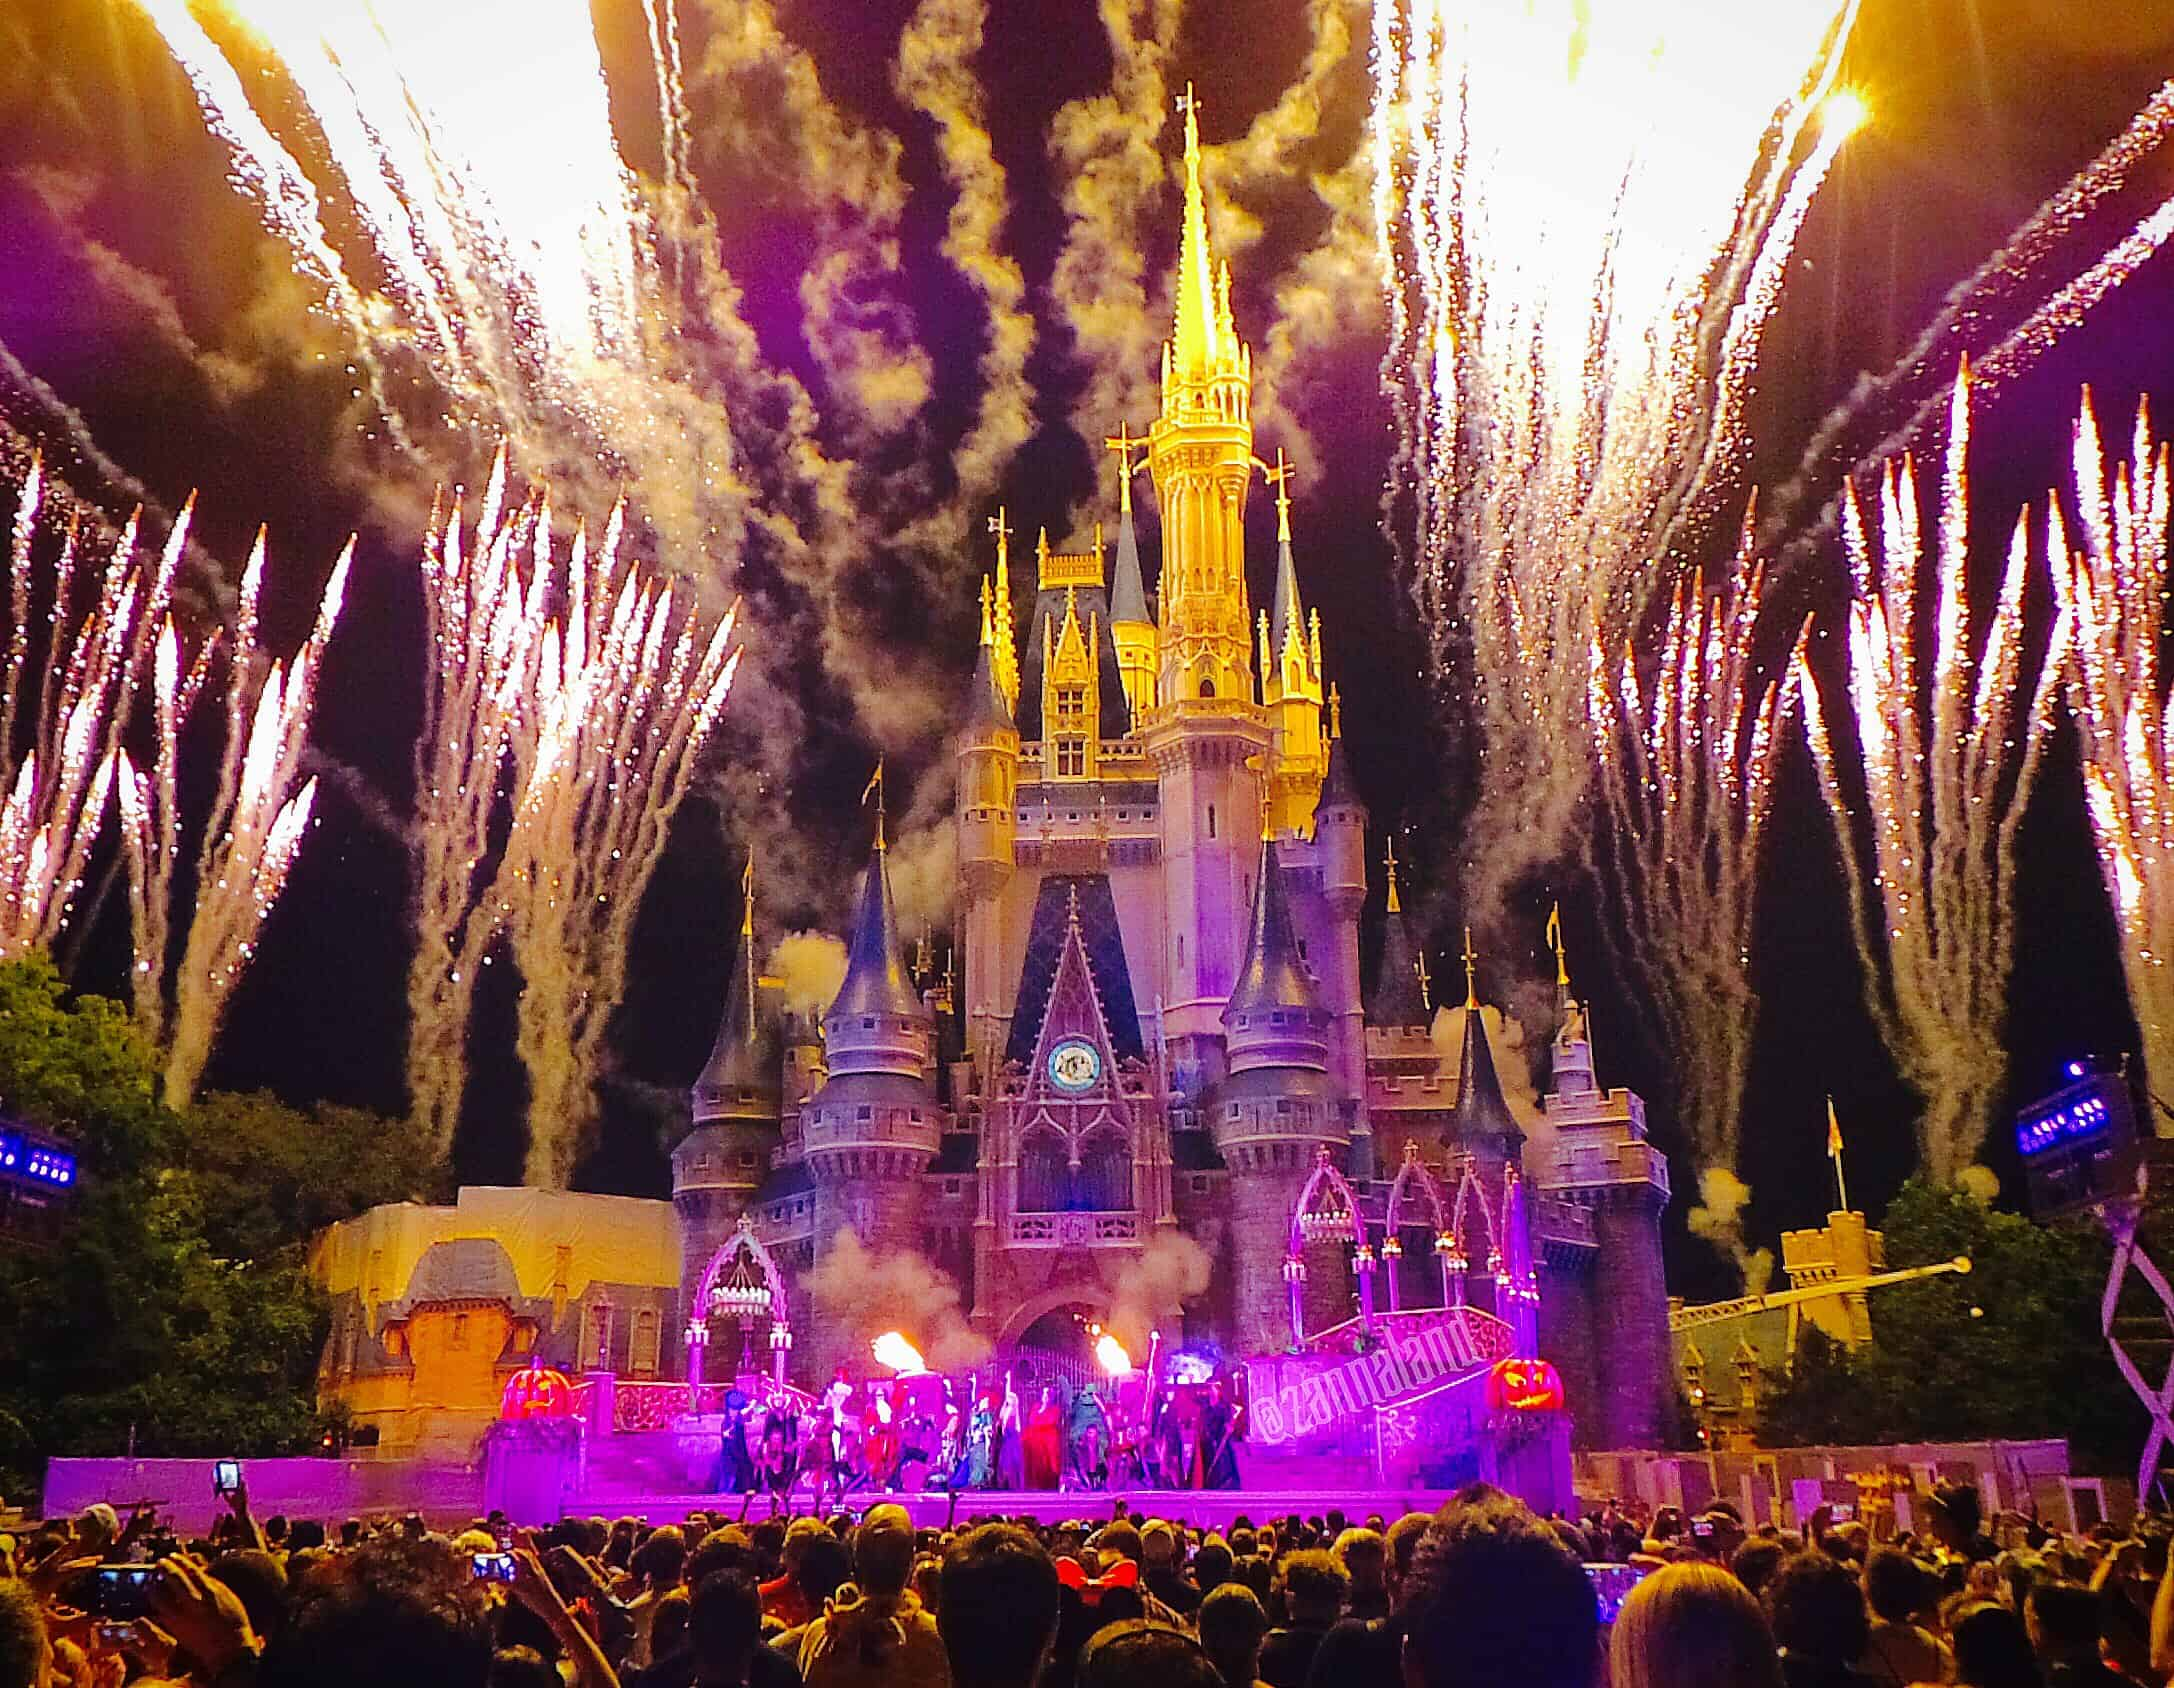 While Mickey's Not So Scary Halloween Party is an annual tradition for my family, I will admit, I was never really one for the shows that would play each year in front of Cinderella Castle. I know that may be blasphemy for some Disney fans, but I just always wanted […]